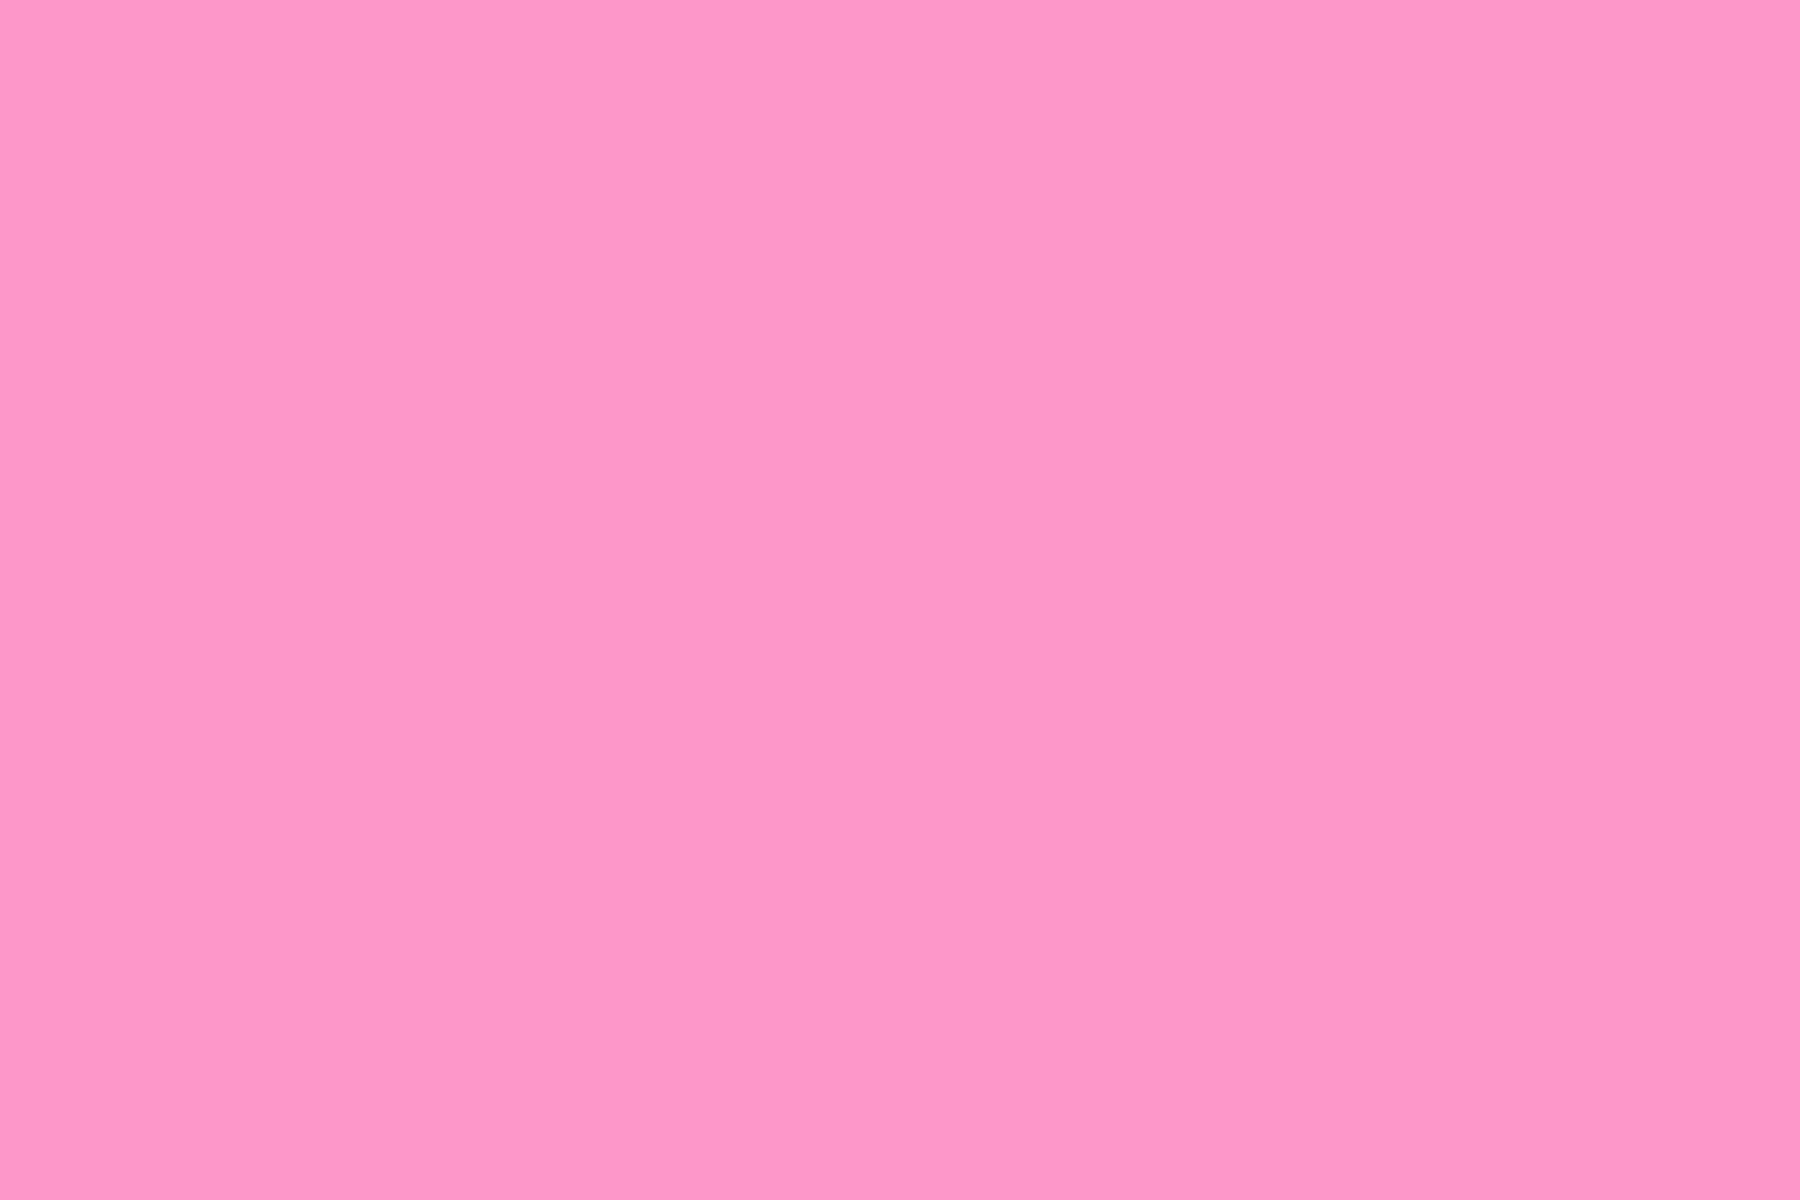 plain pink backgrounds 19122